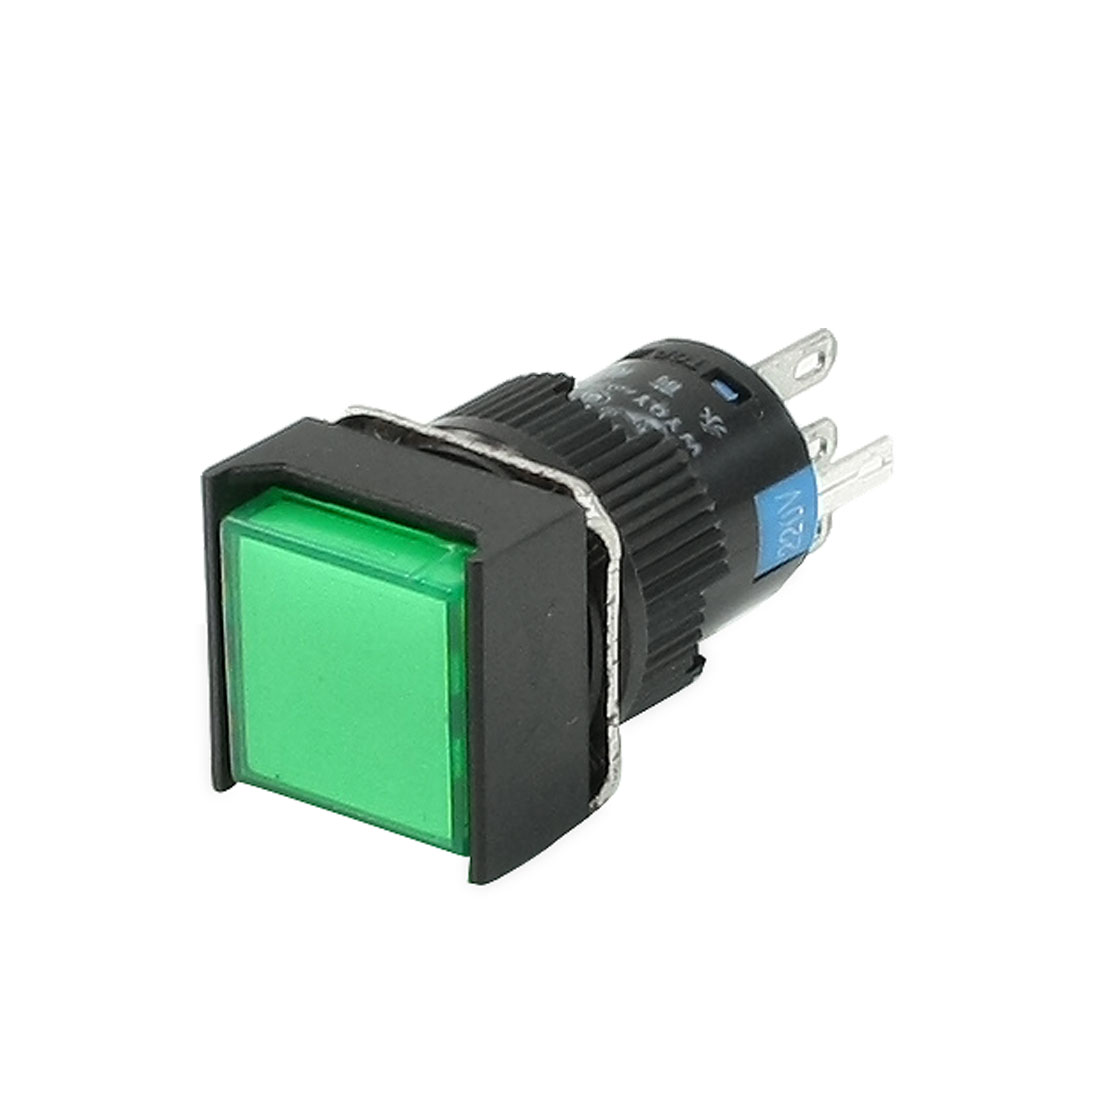 250VAC 5A SPDT 5 Pins Latching Green Square Push Button Switch w 220V LED Light